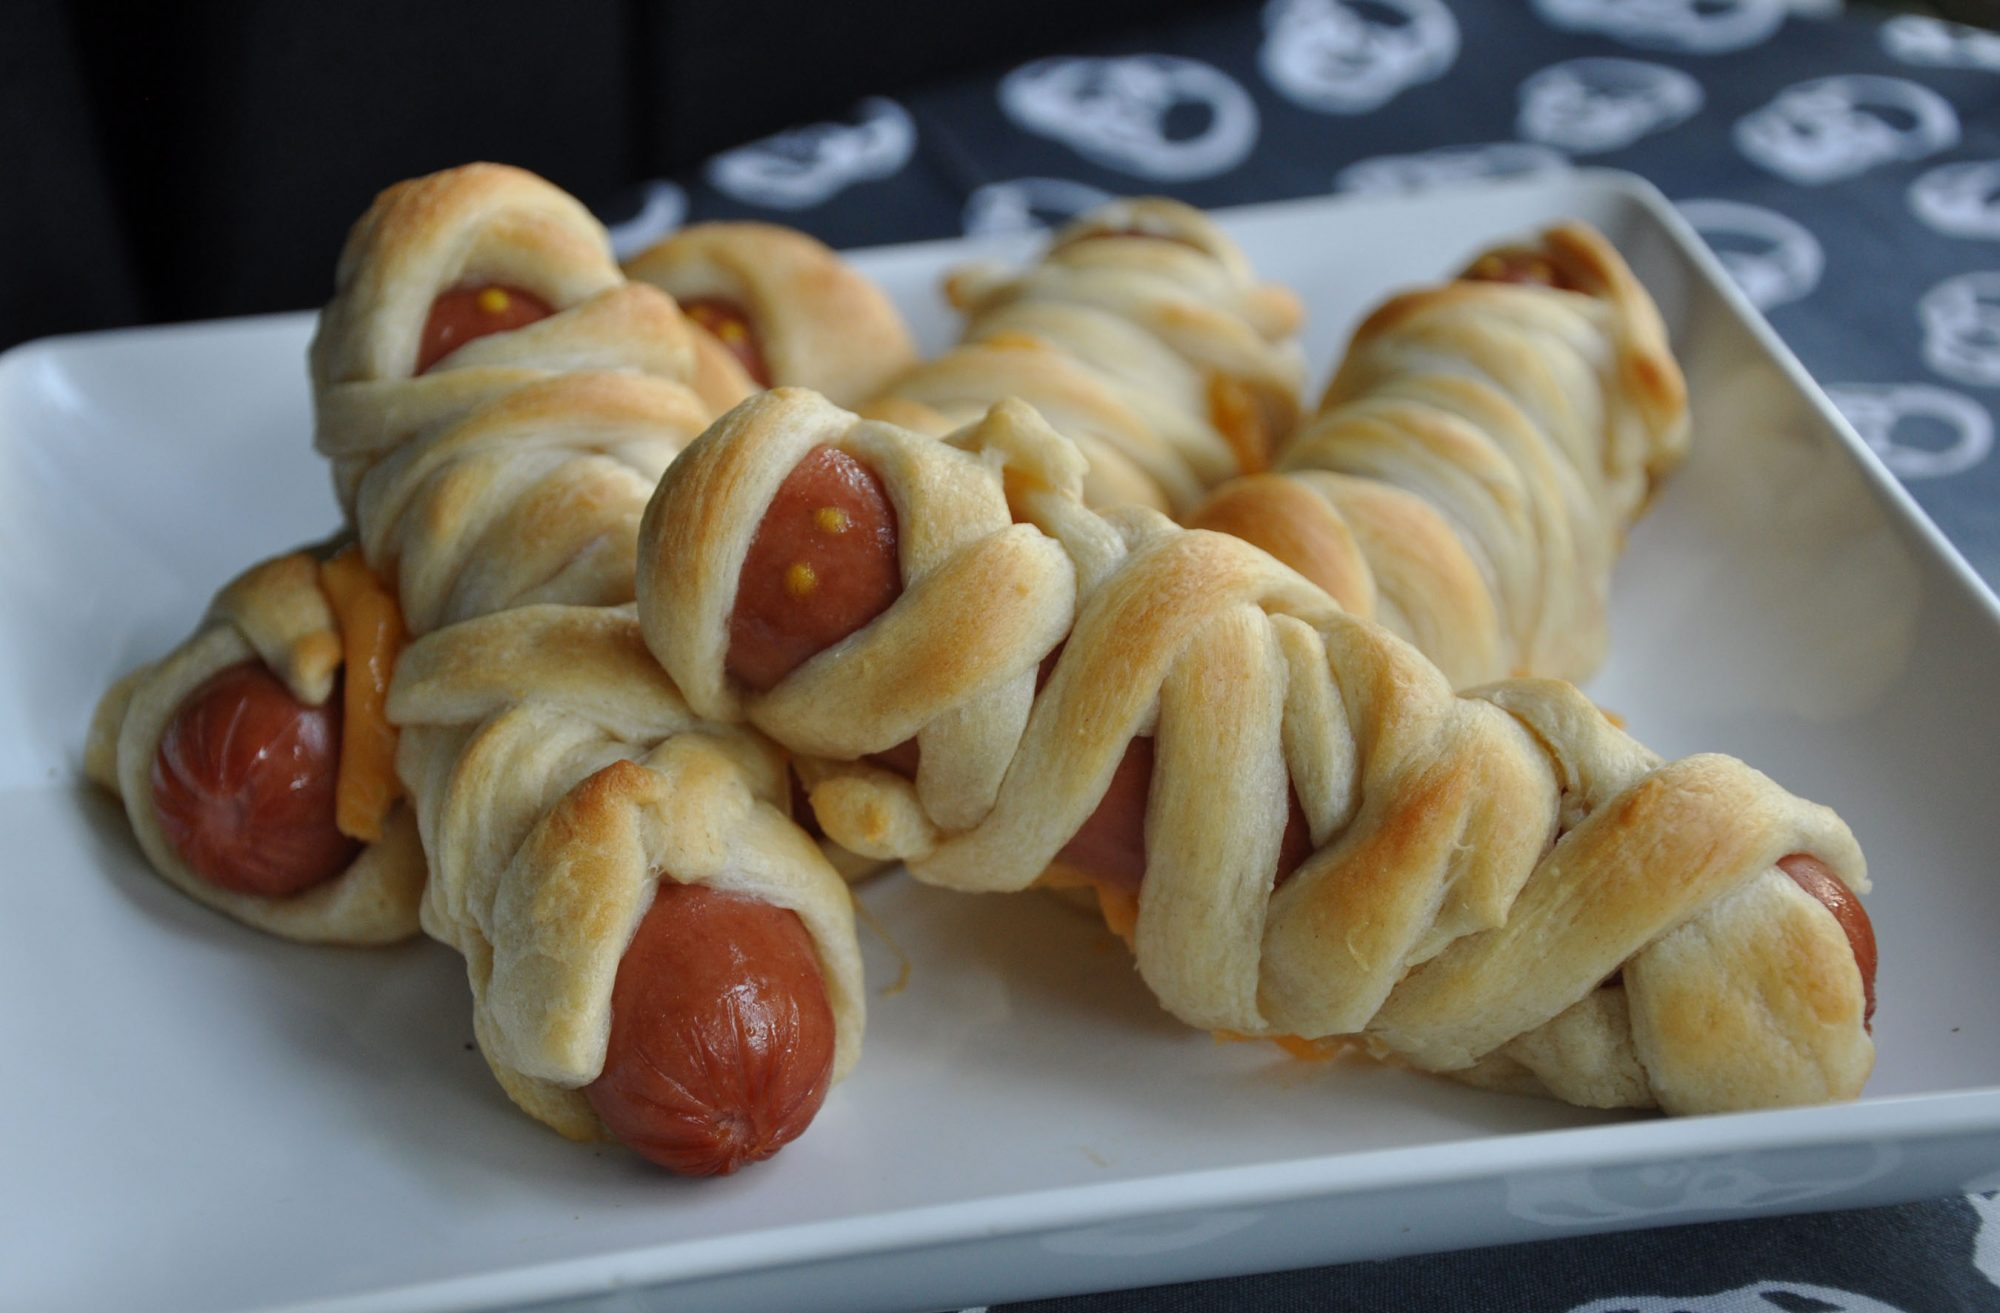 Hot dogs wrapped in crescent roll dough to look like mummies